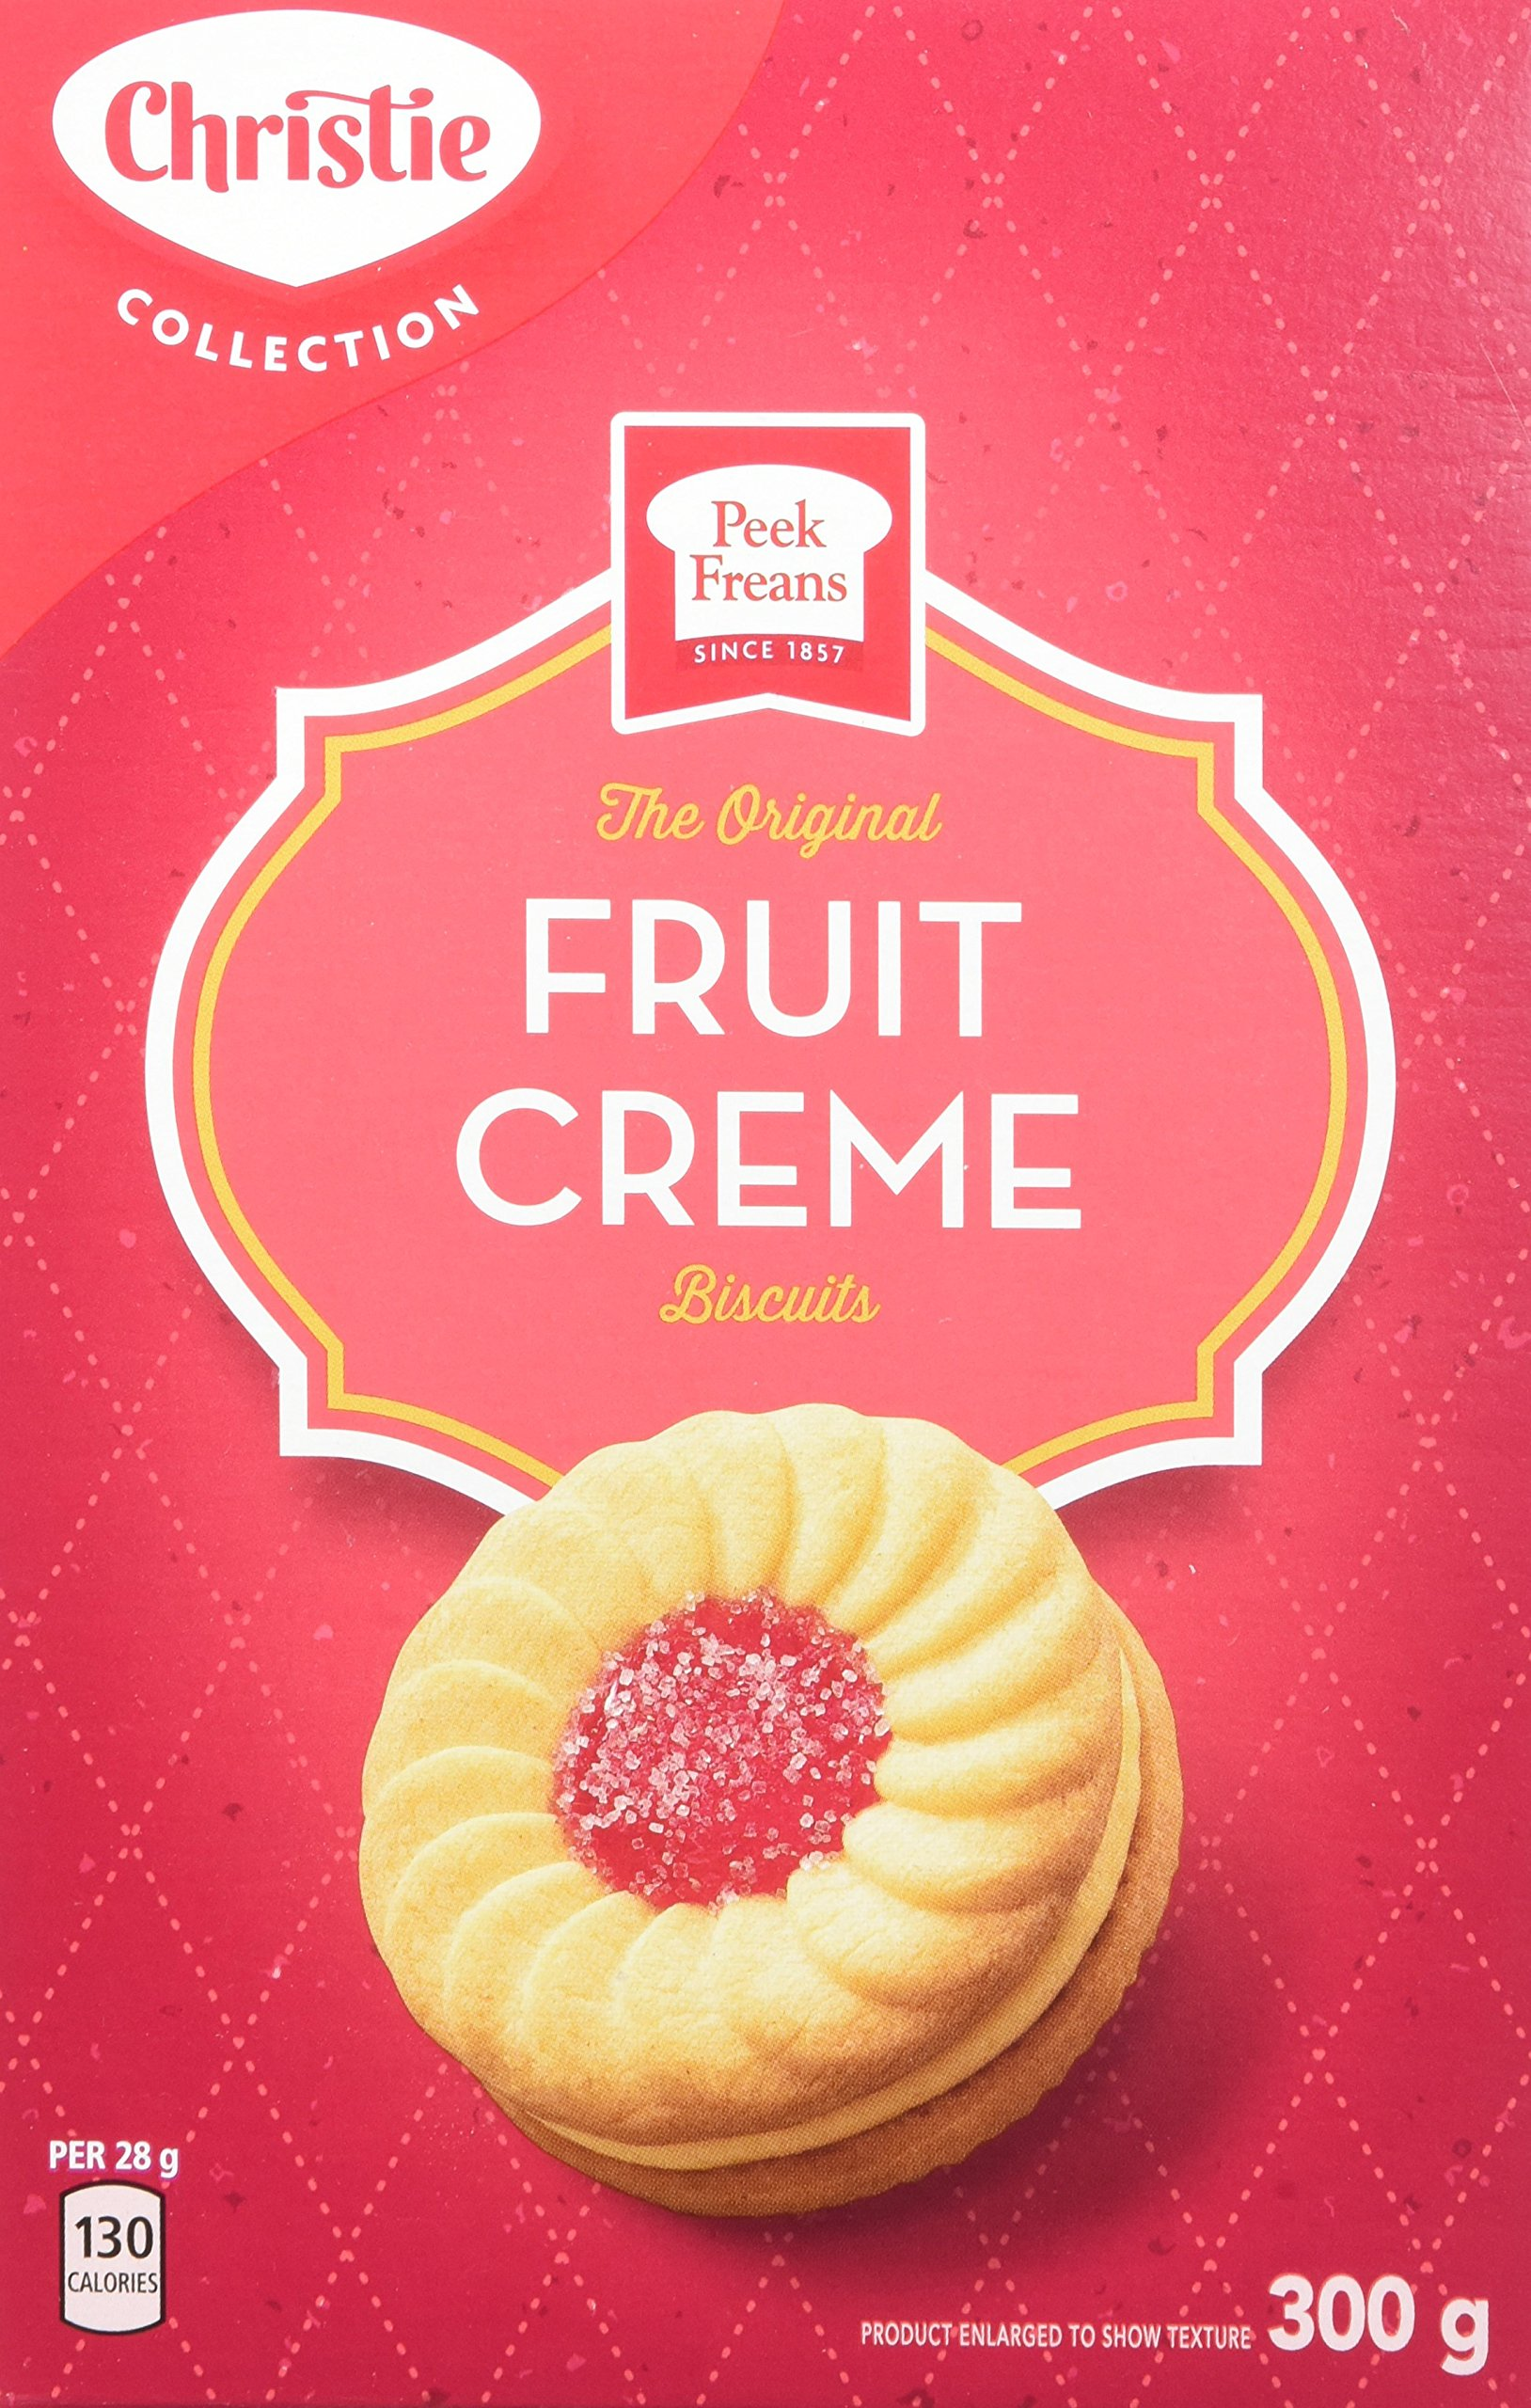 Peek Freans Fruit Crème 300g/10.6oz {Imported from Canada} by Christie